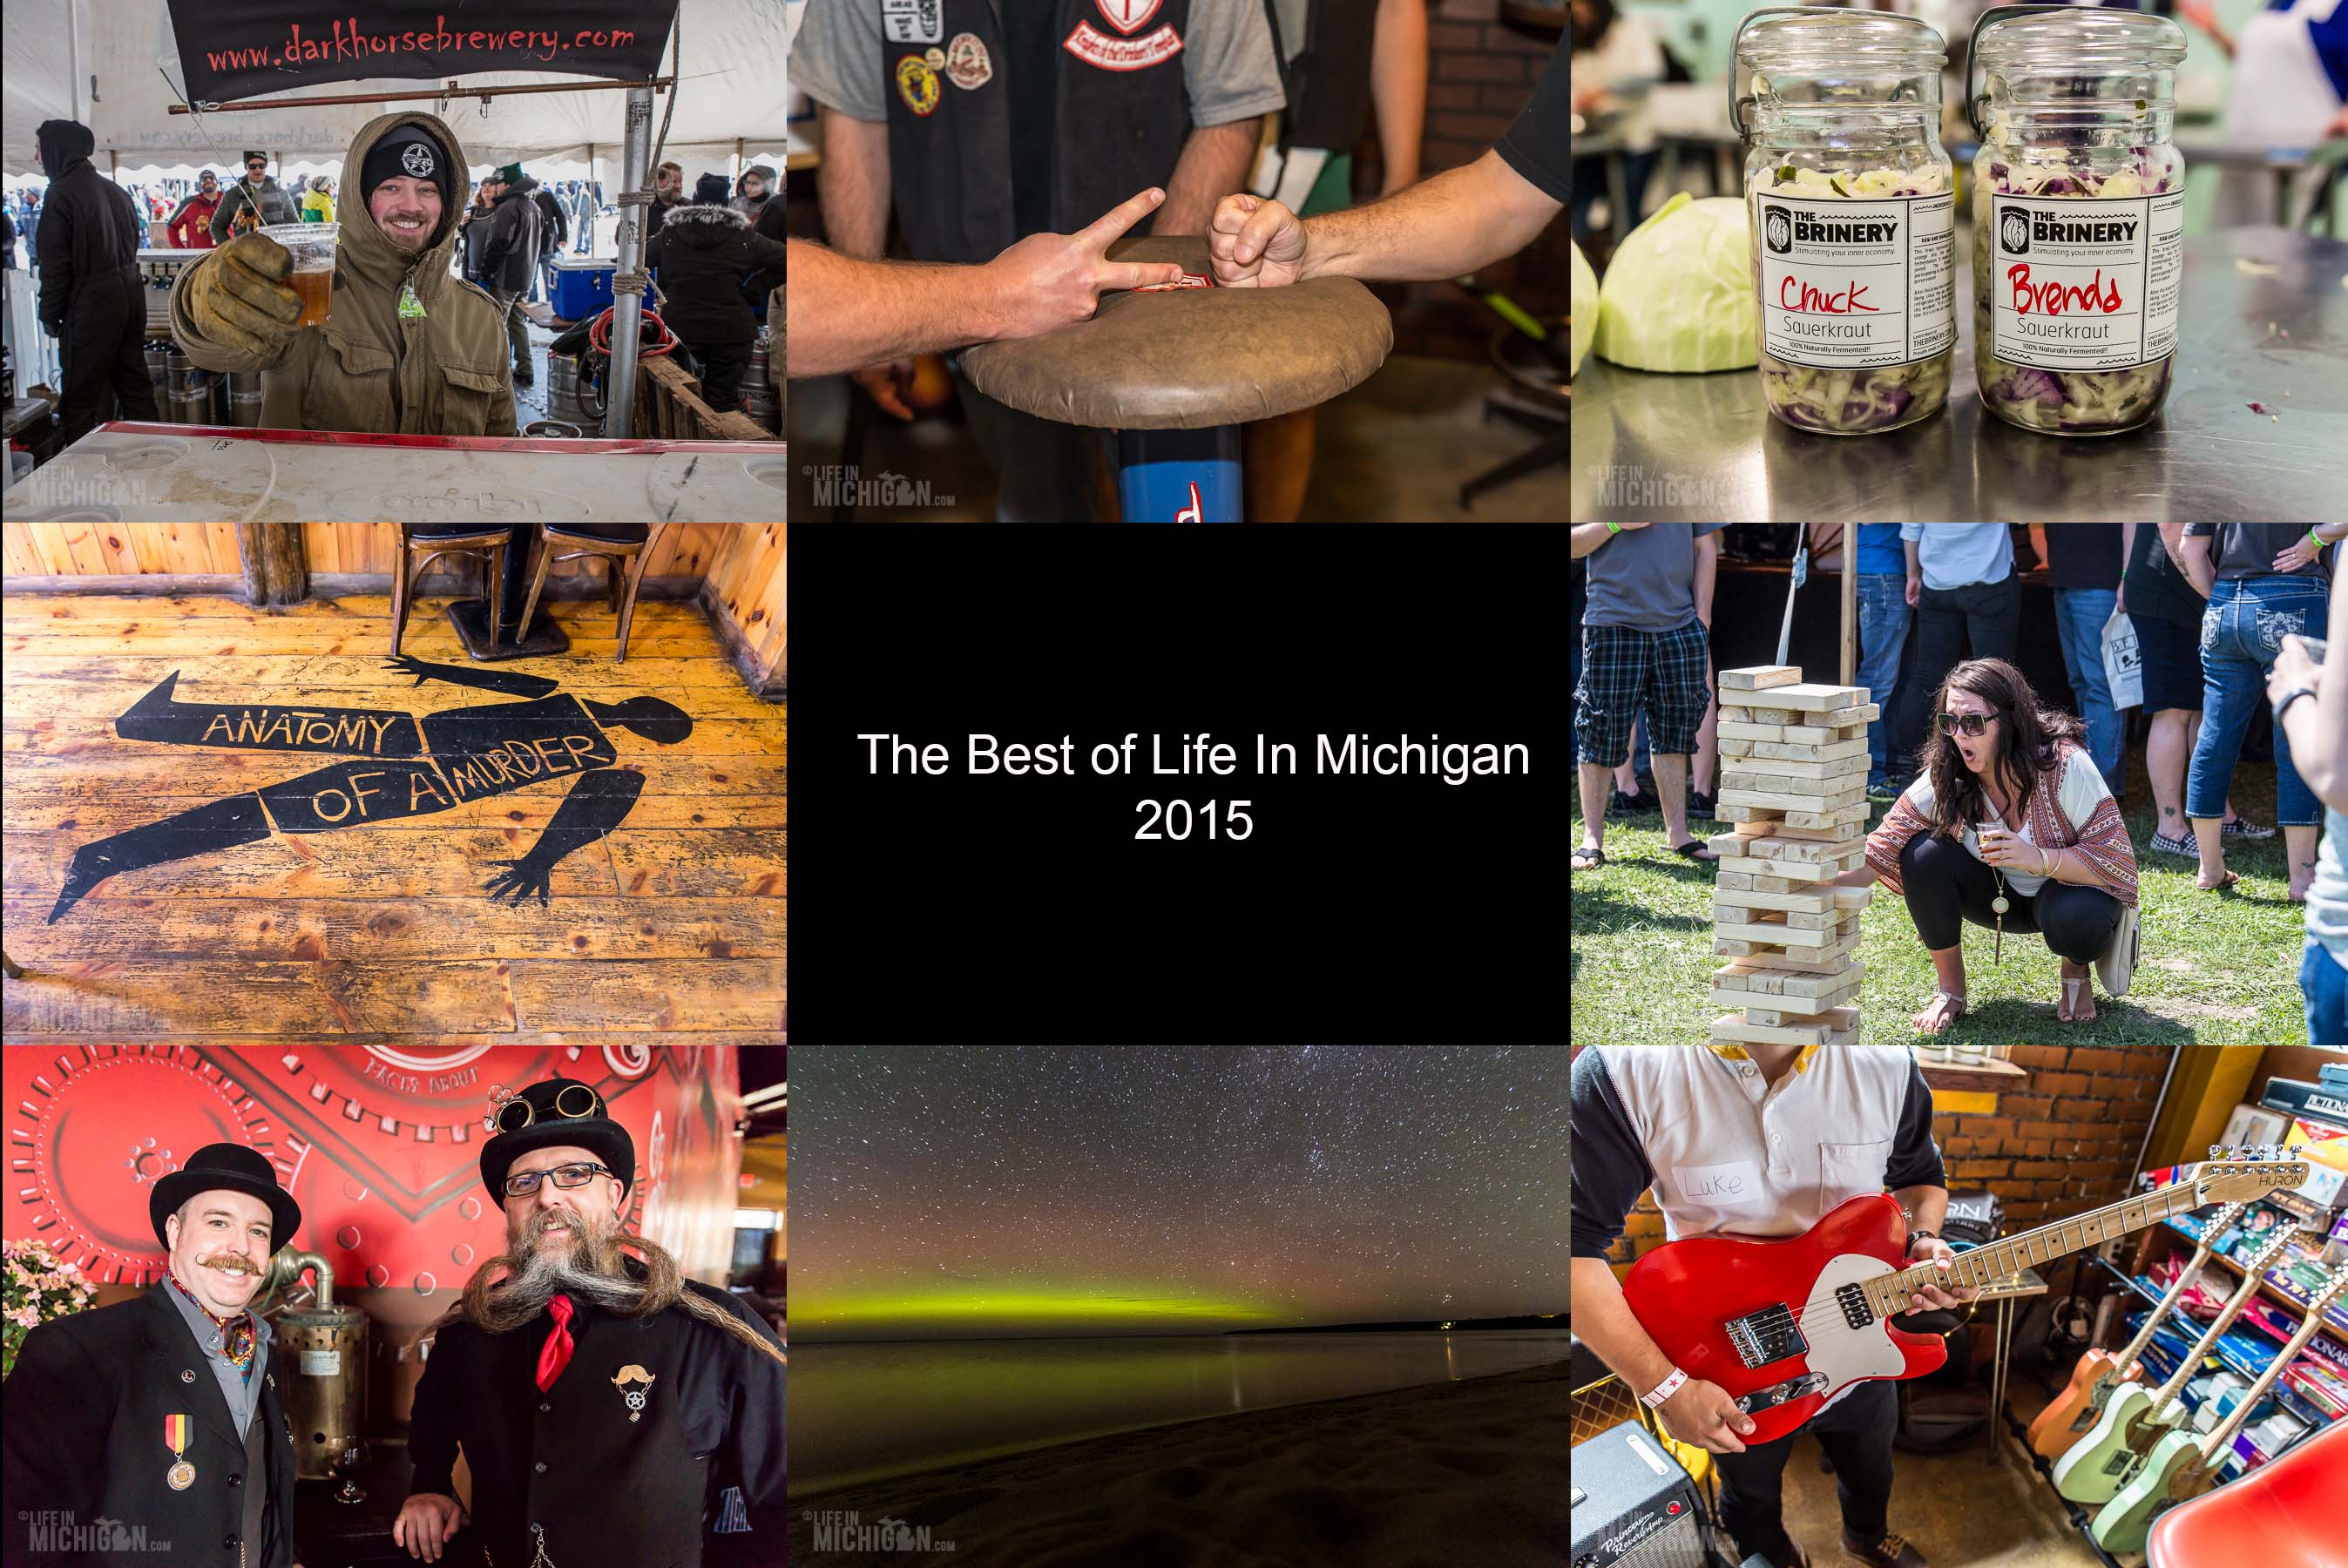 Best of Life In Michigan